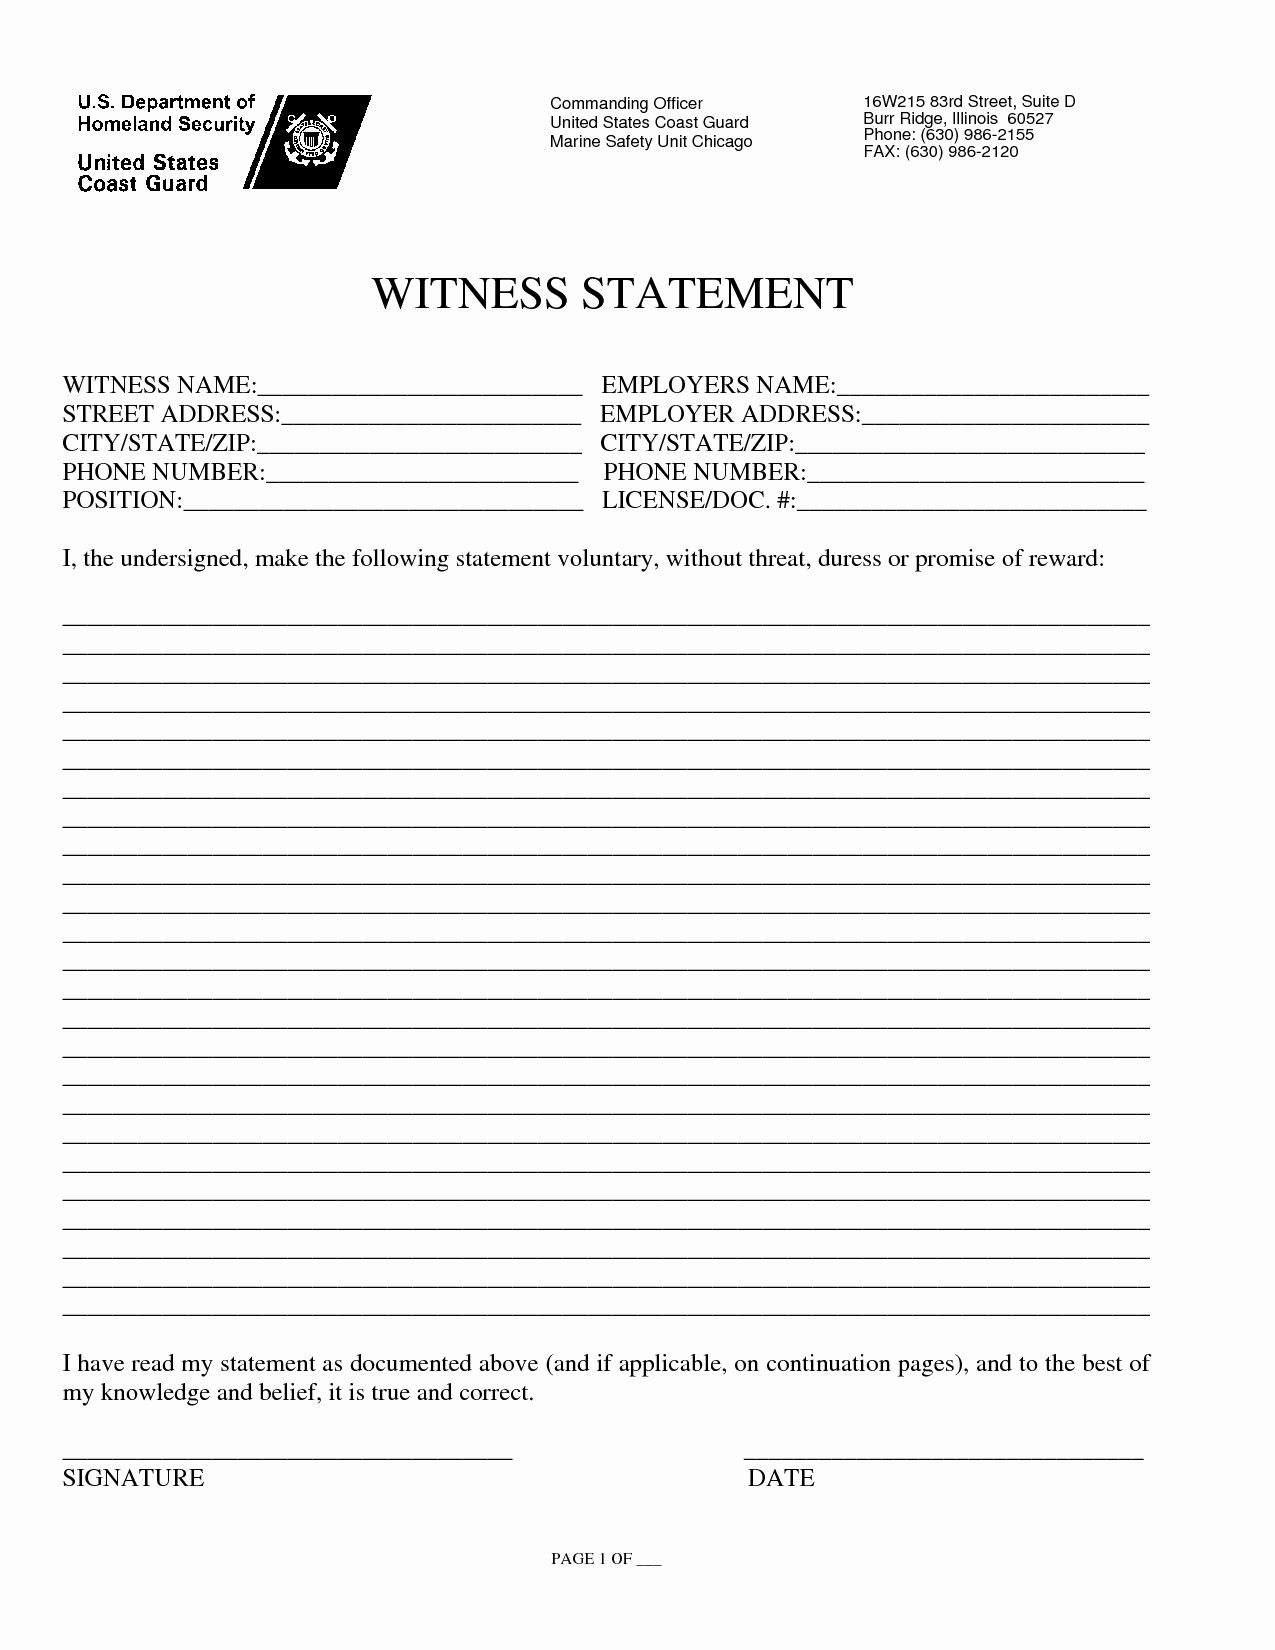 Witness Statement Form Template Best Of Index Of Cdn 3